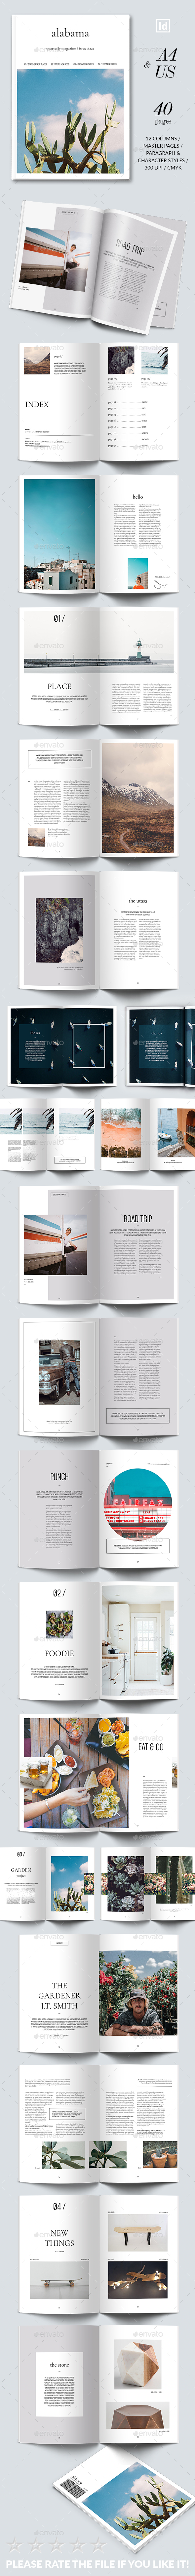 GraphicRiver Alabama Magazine Template 20663246